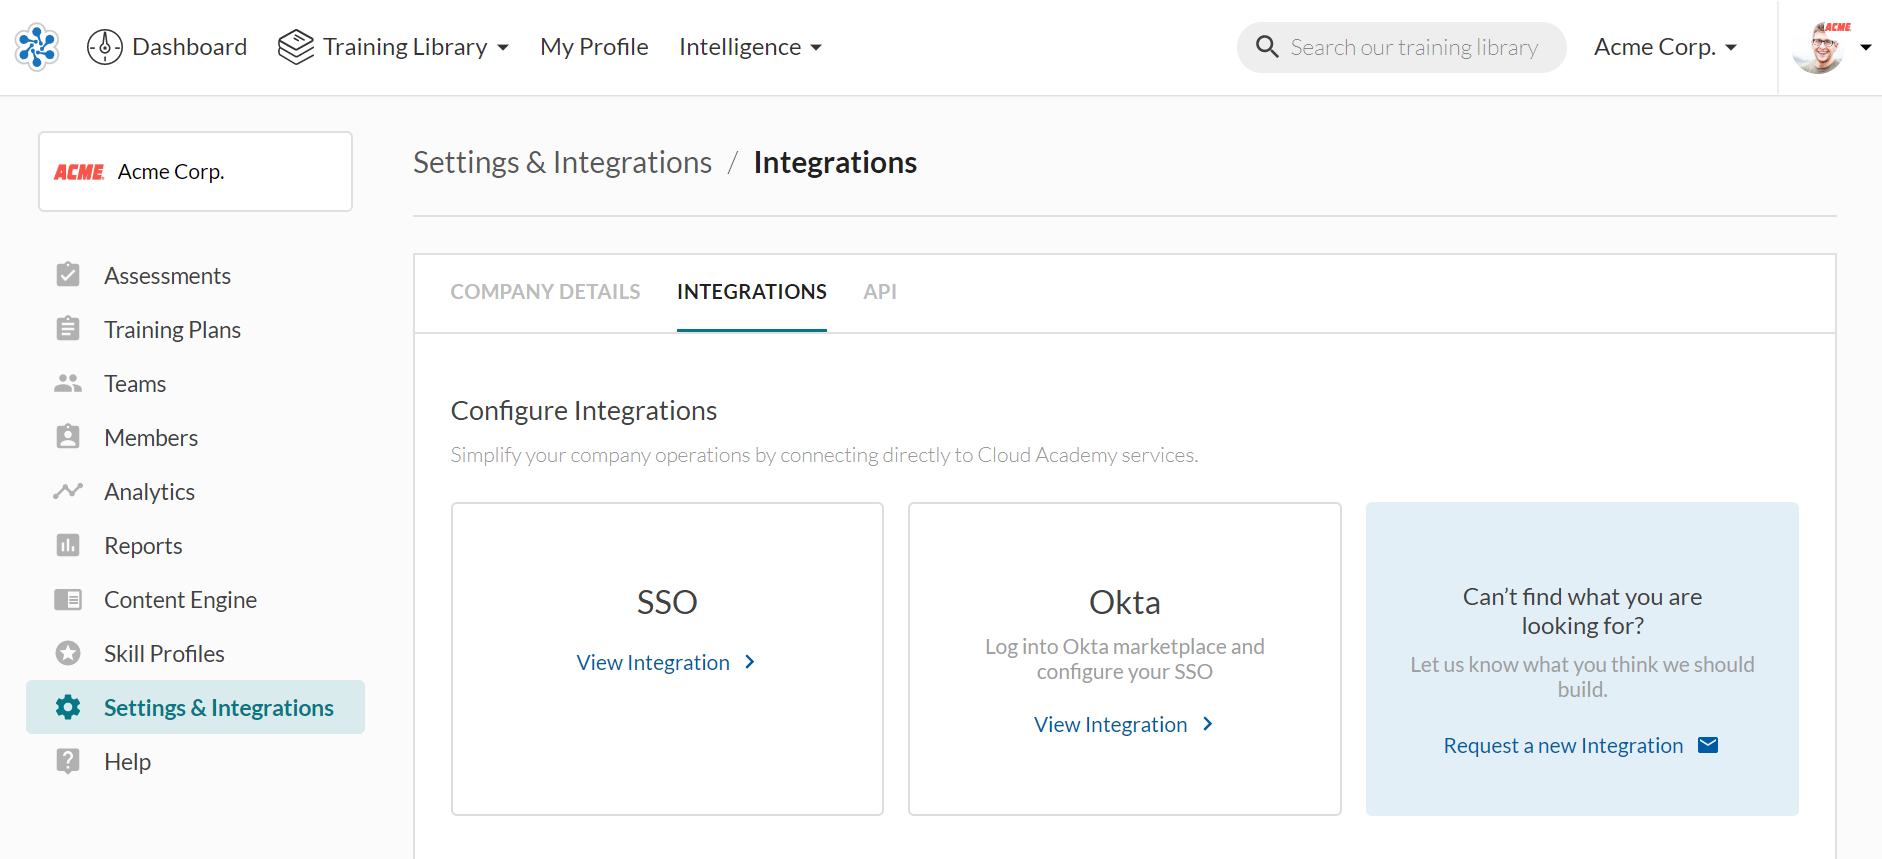 Settings and integrations